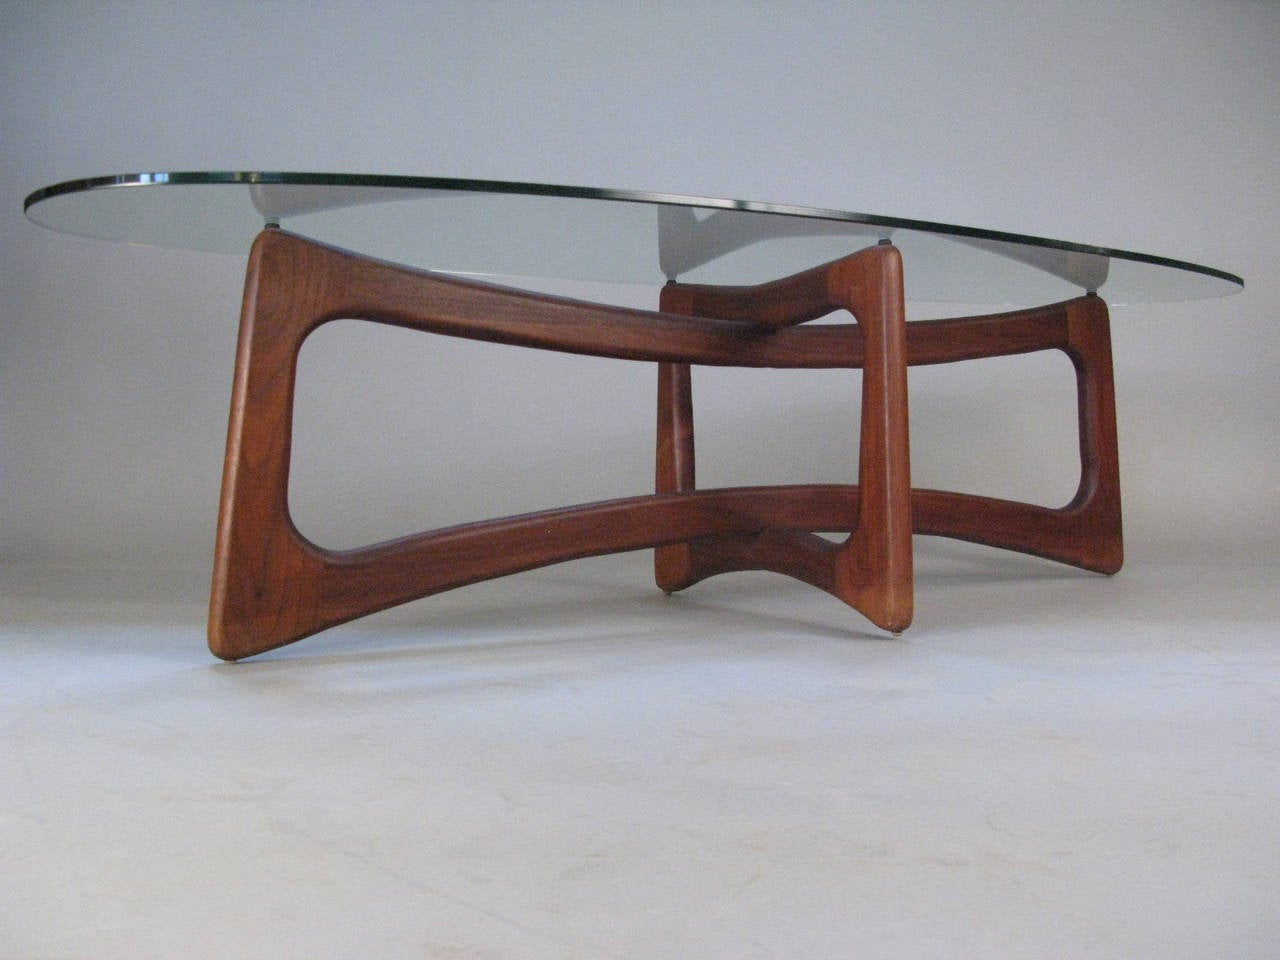 Sculptural Modern Walnut And Glass Table By Adrian